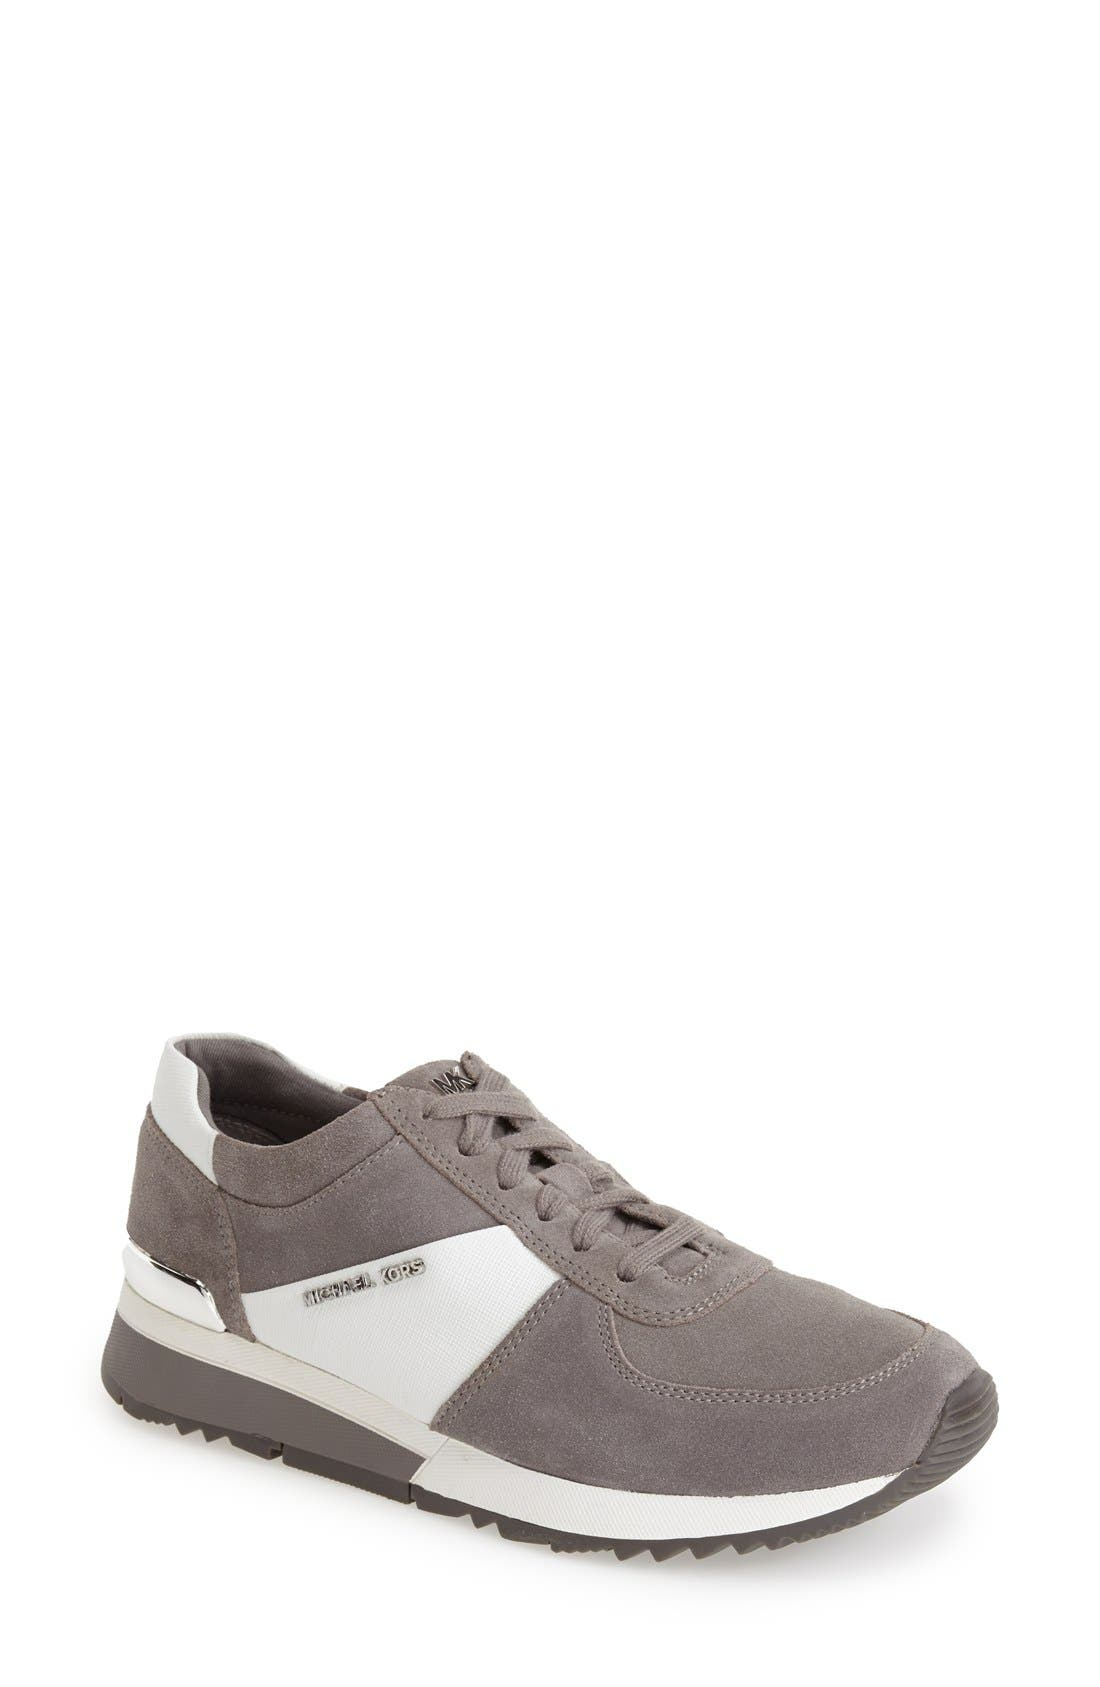 Main Image - MICHAEL Michael Kors 'Allie' Sneaker (Women)